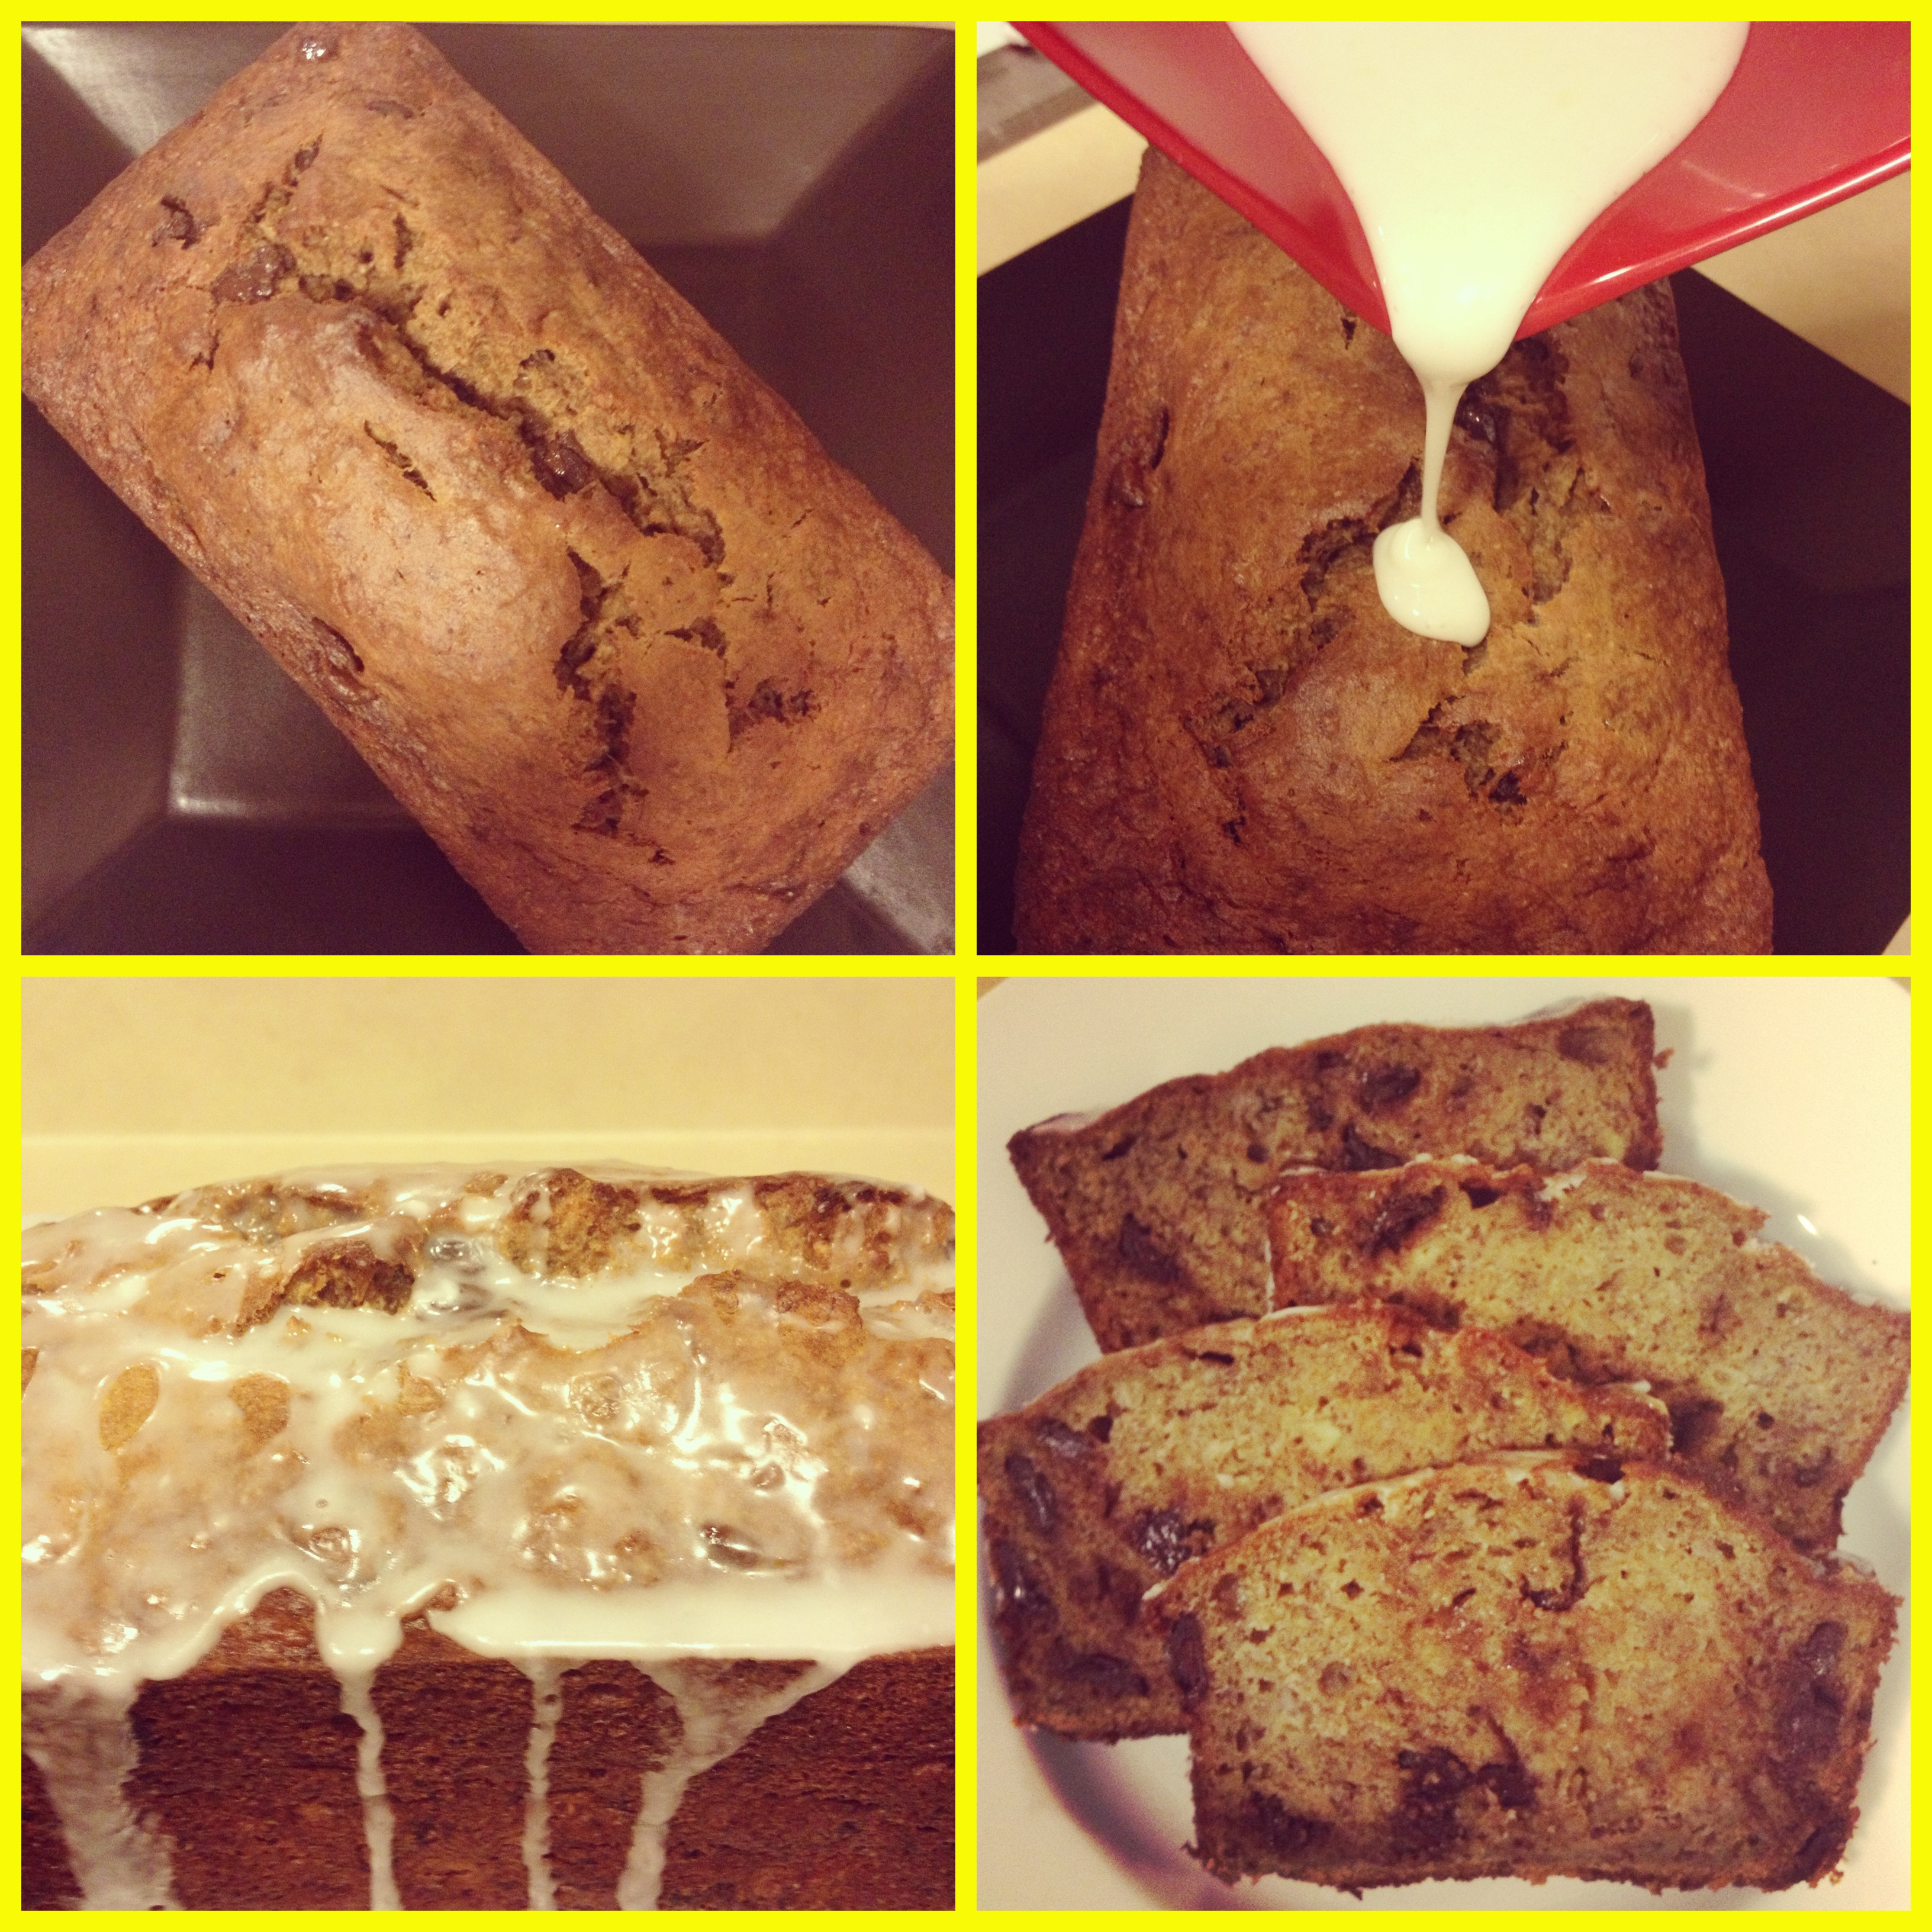 Melissa Clark's Lemony Olive Oil Banana Bread with Chocolate Chips